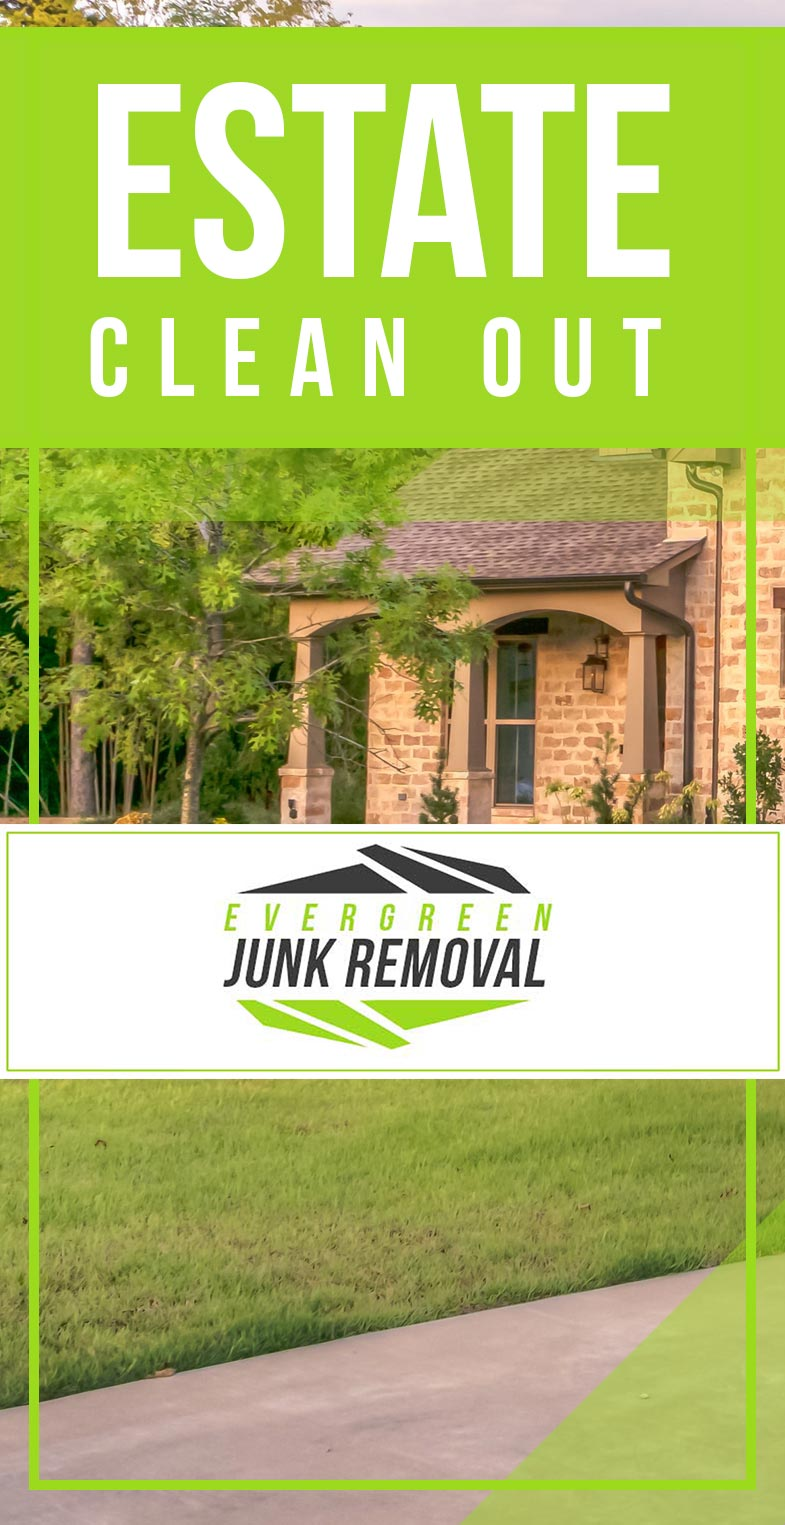 Junk Removal Lake Clarke Shores Estate Clean Out